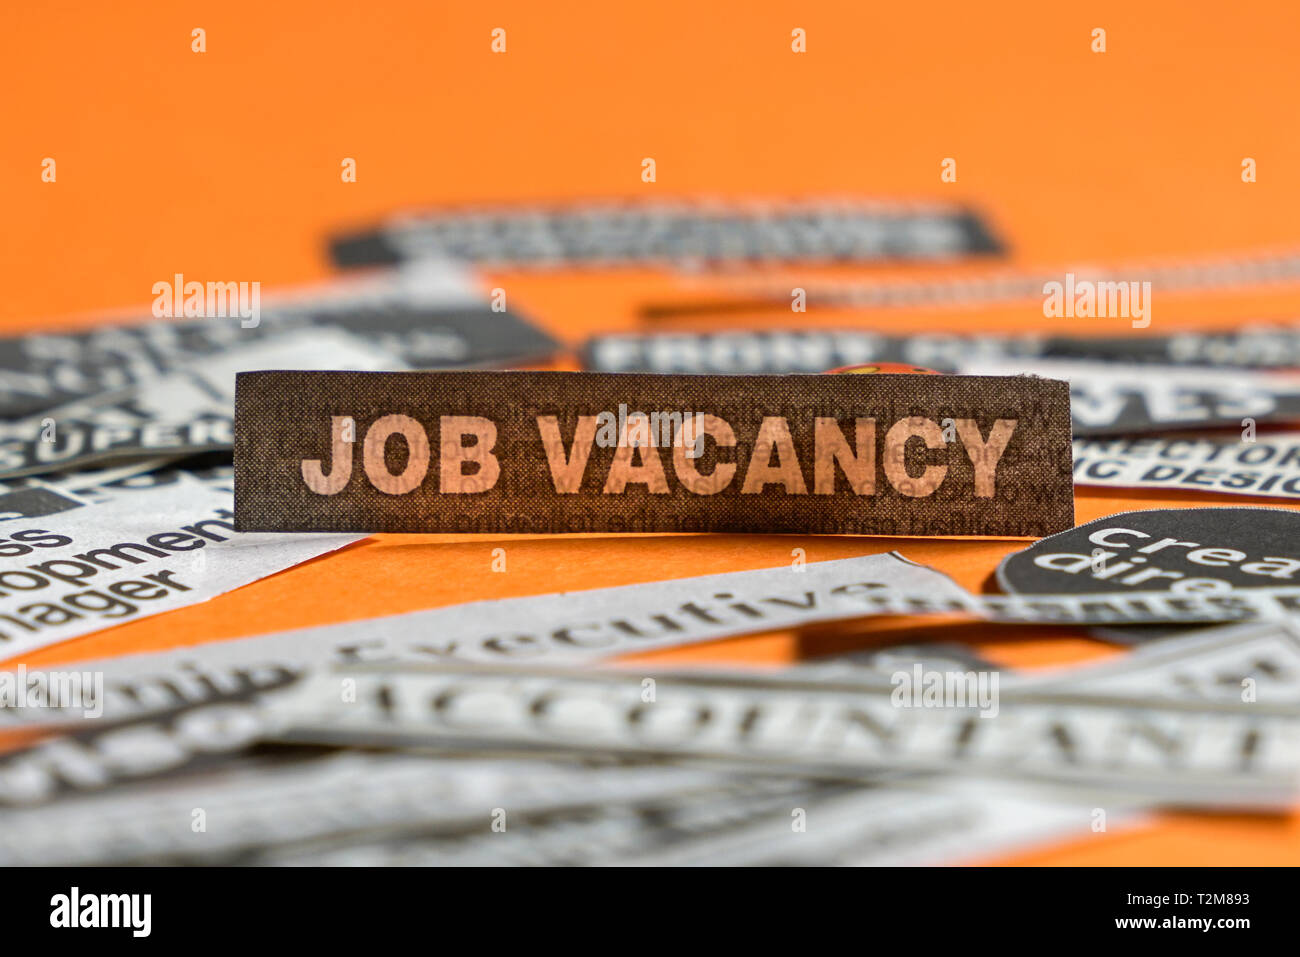 Jobs or careers concept: multiple job titles or occupations cut off from newspaper with Job Vacancy a the centre of the pile - Stock Image